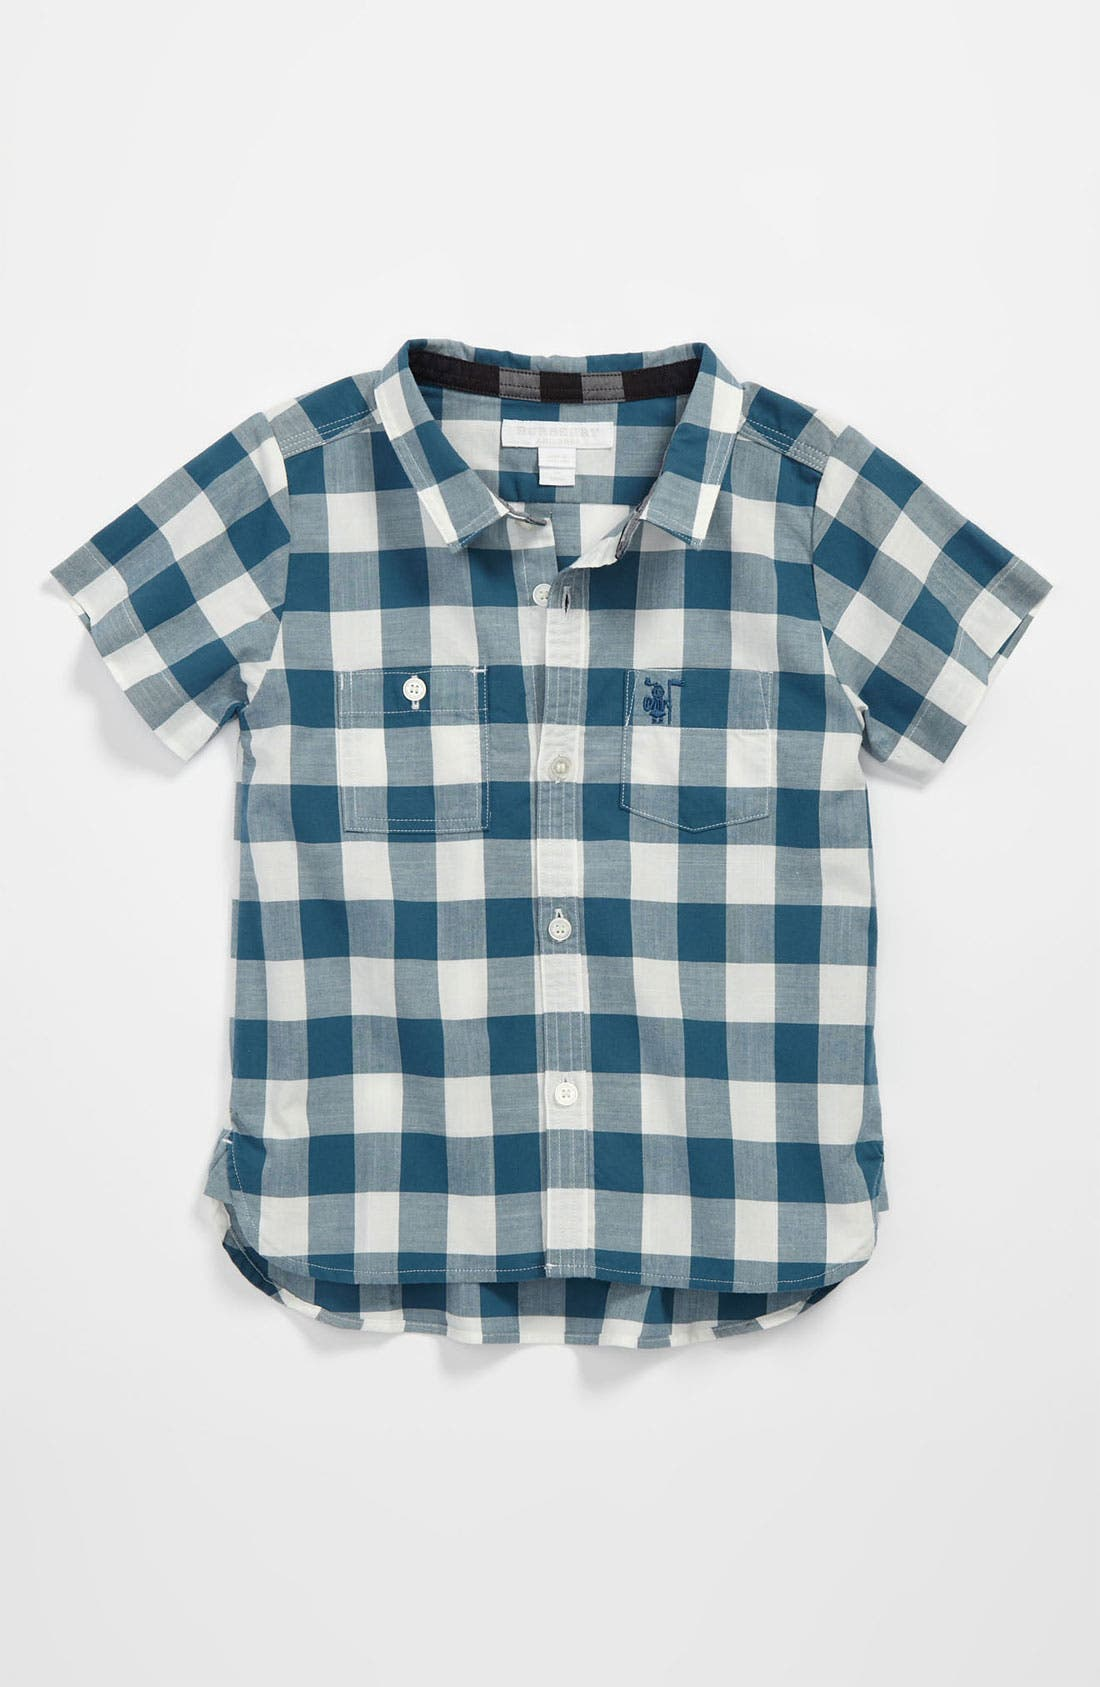 Alternate Image 1 Selected - Burberry 'Mini Rex' Woven Shirt (Baby)